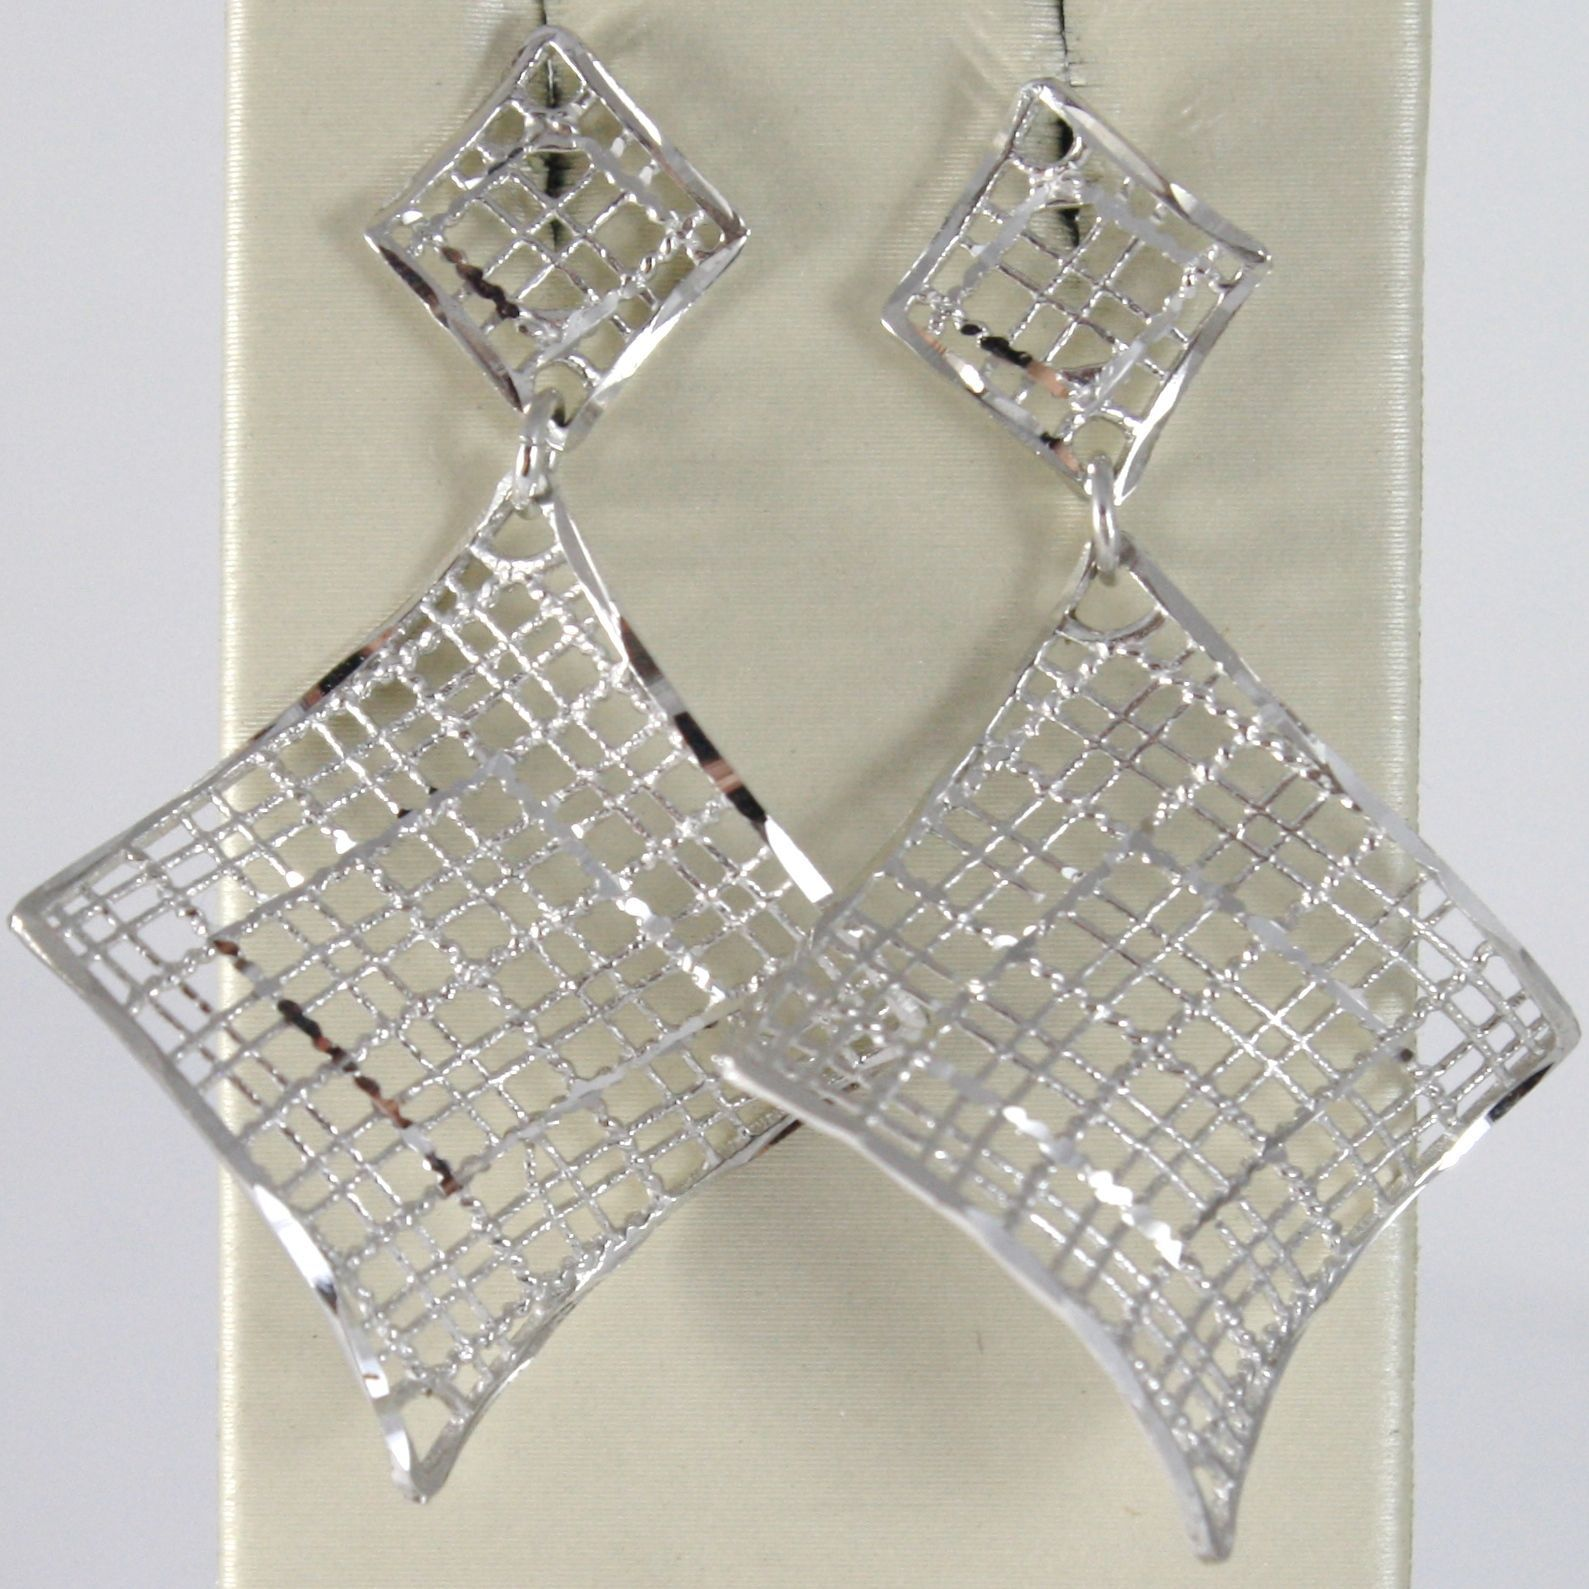 WHITE GOLD EARRINGS 750 18K HANGING 4.3 CM DOUBLE RHOMBUS WAVY AND MILLED